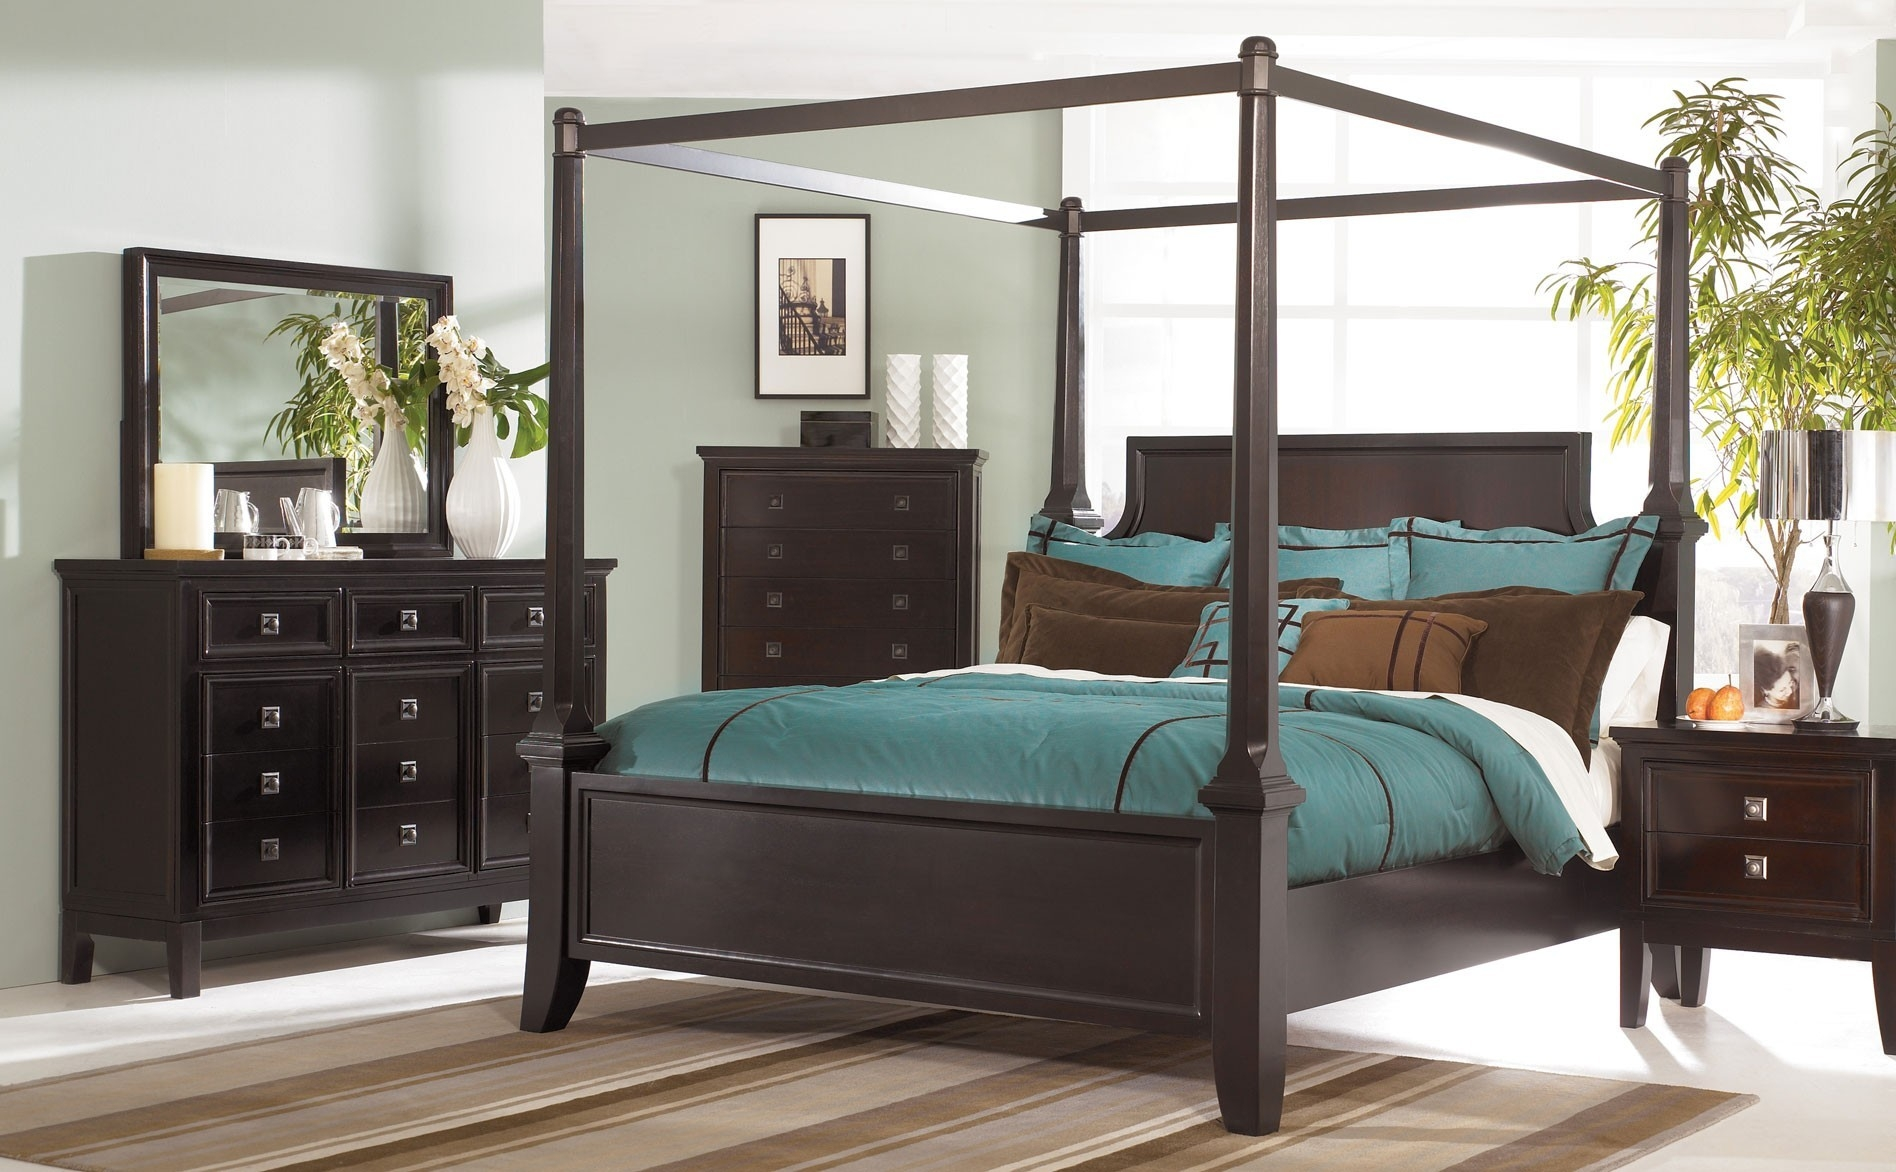 Queen Canopy Bed Frame Wood